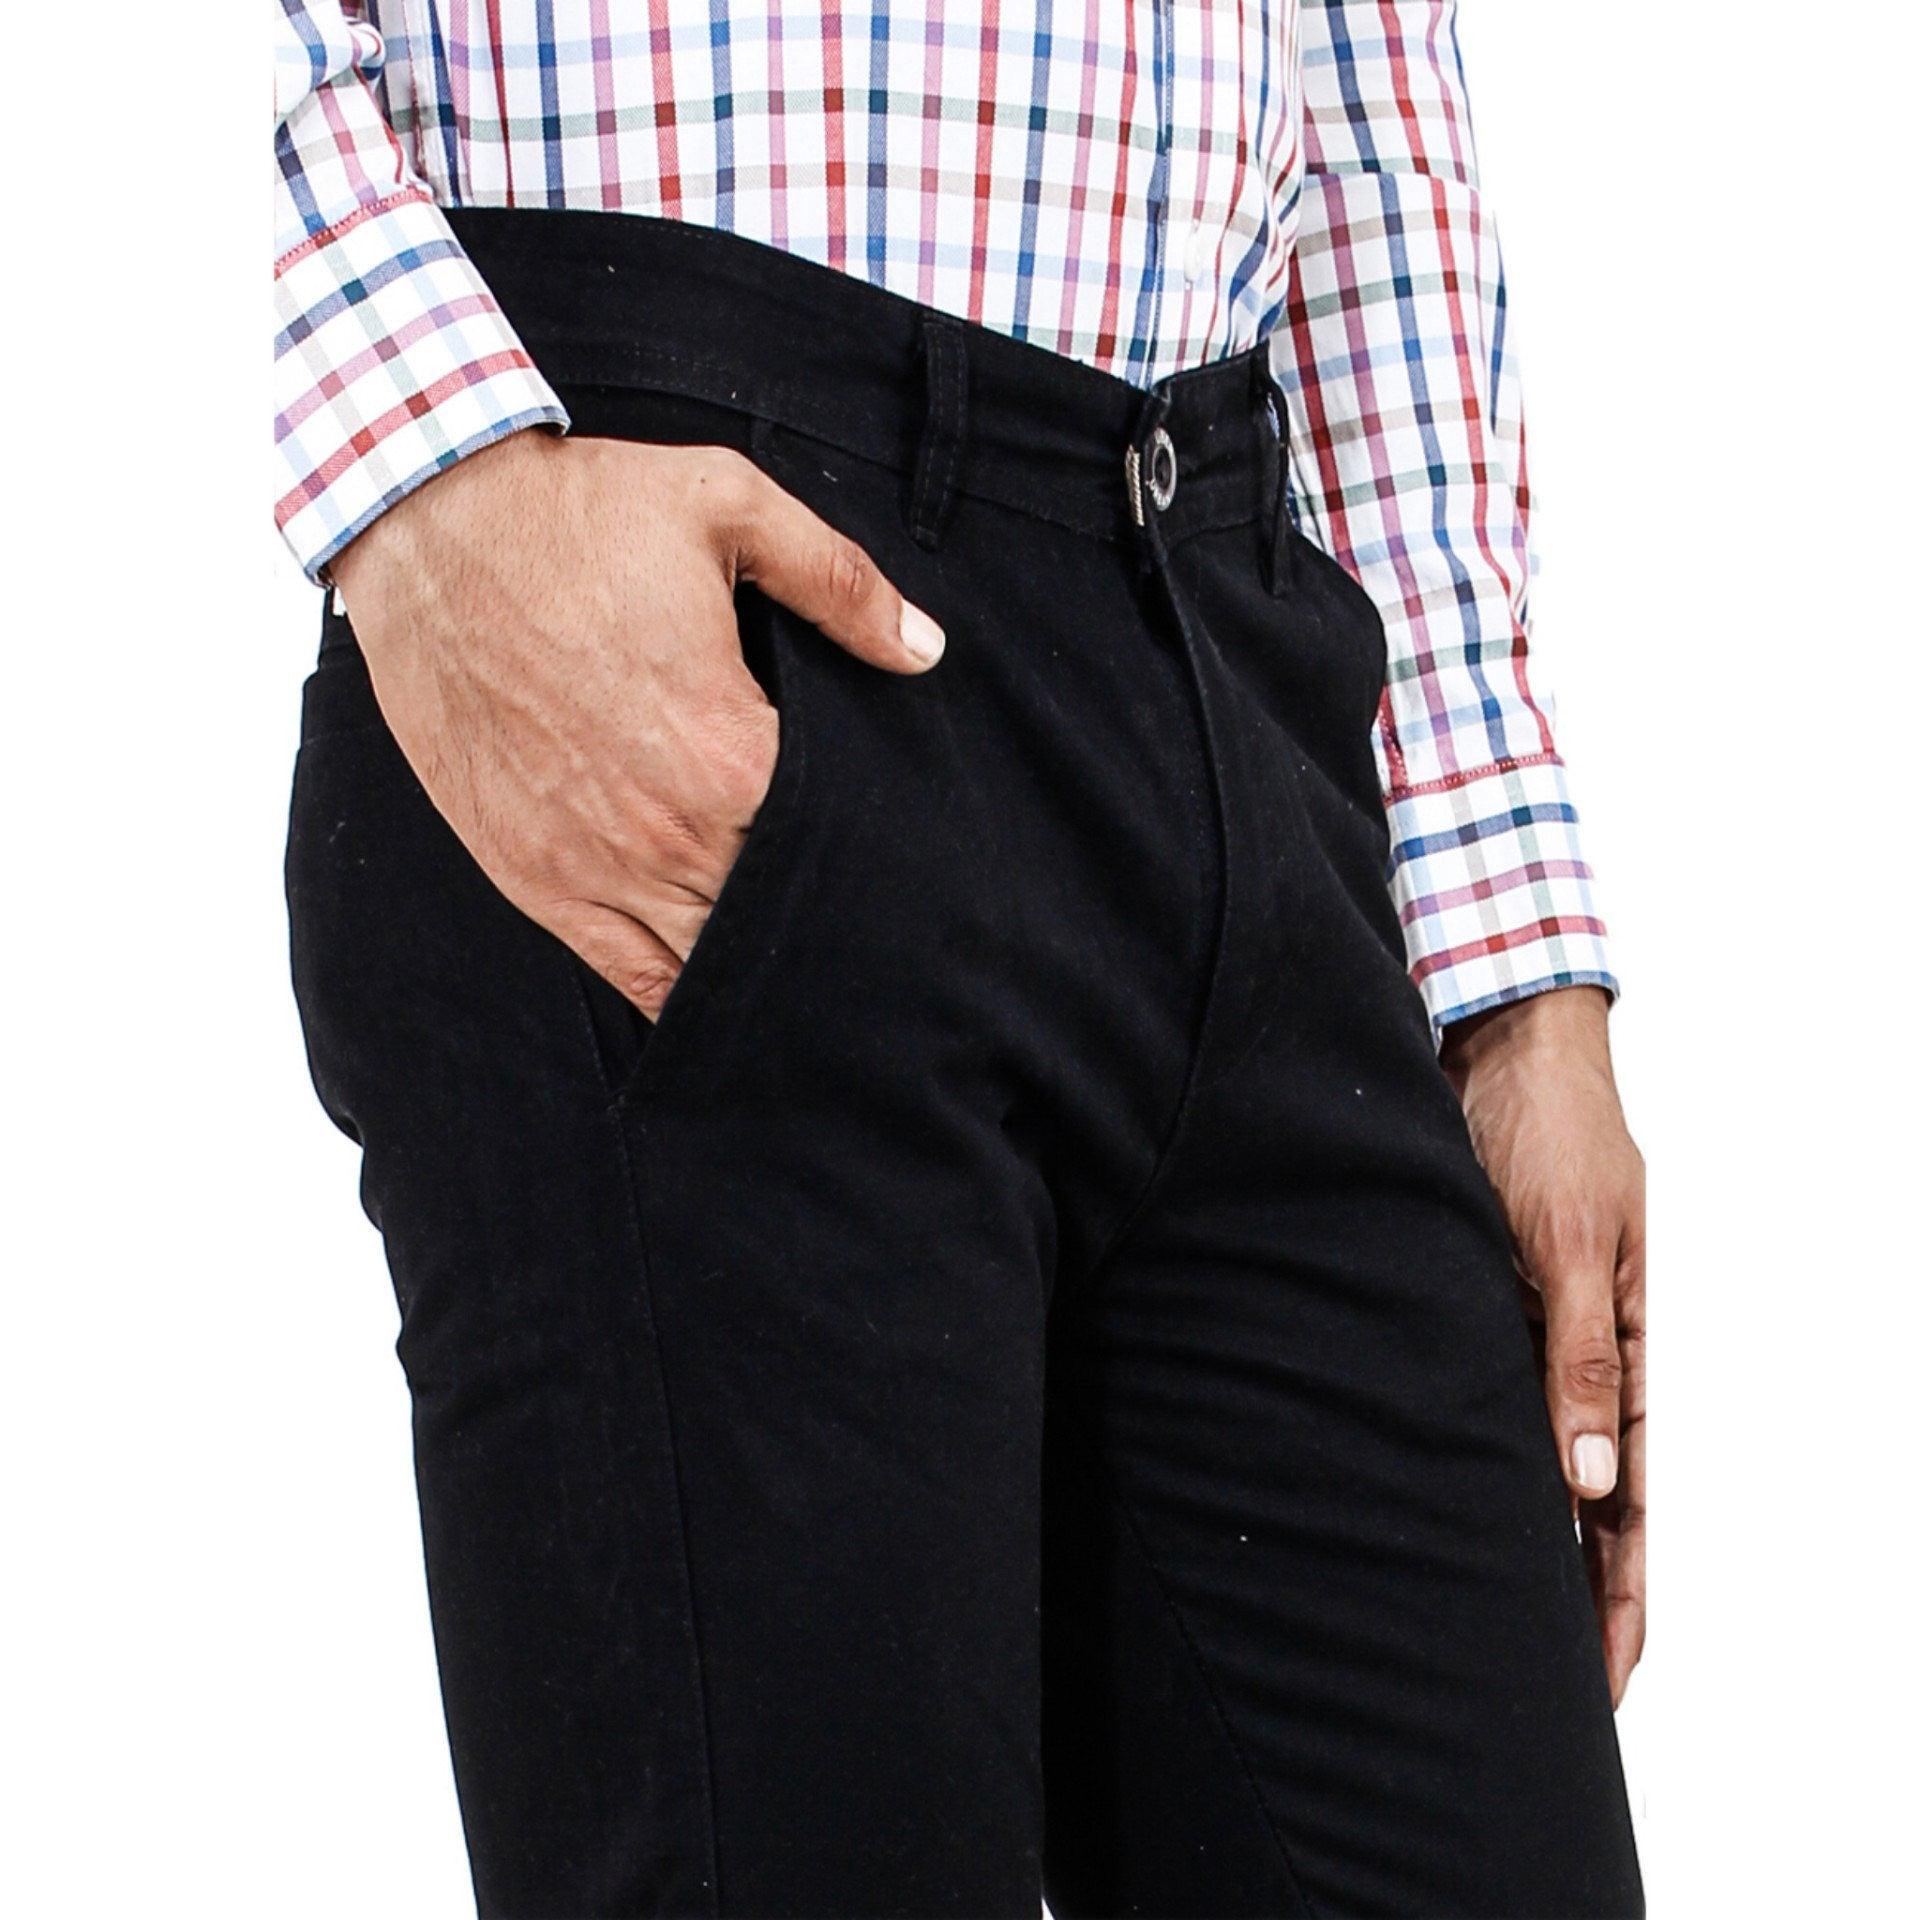 Uber Jet Black Rocky Trouser Right Side View